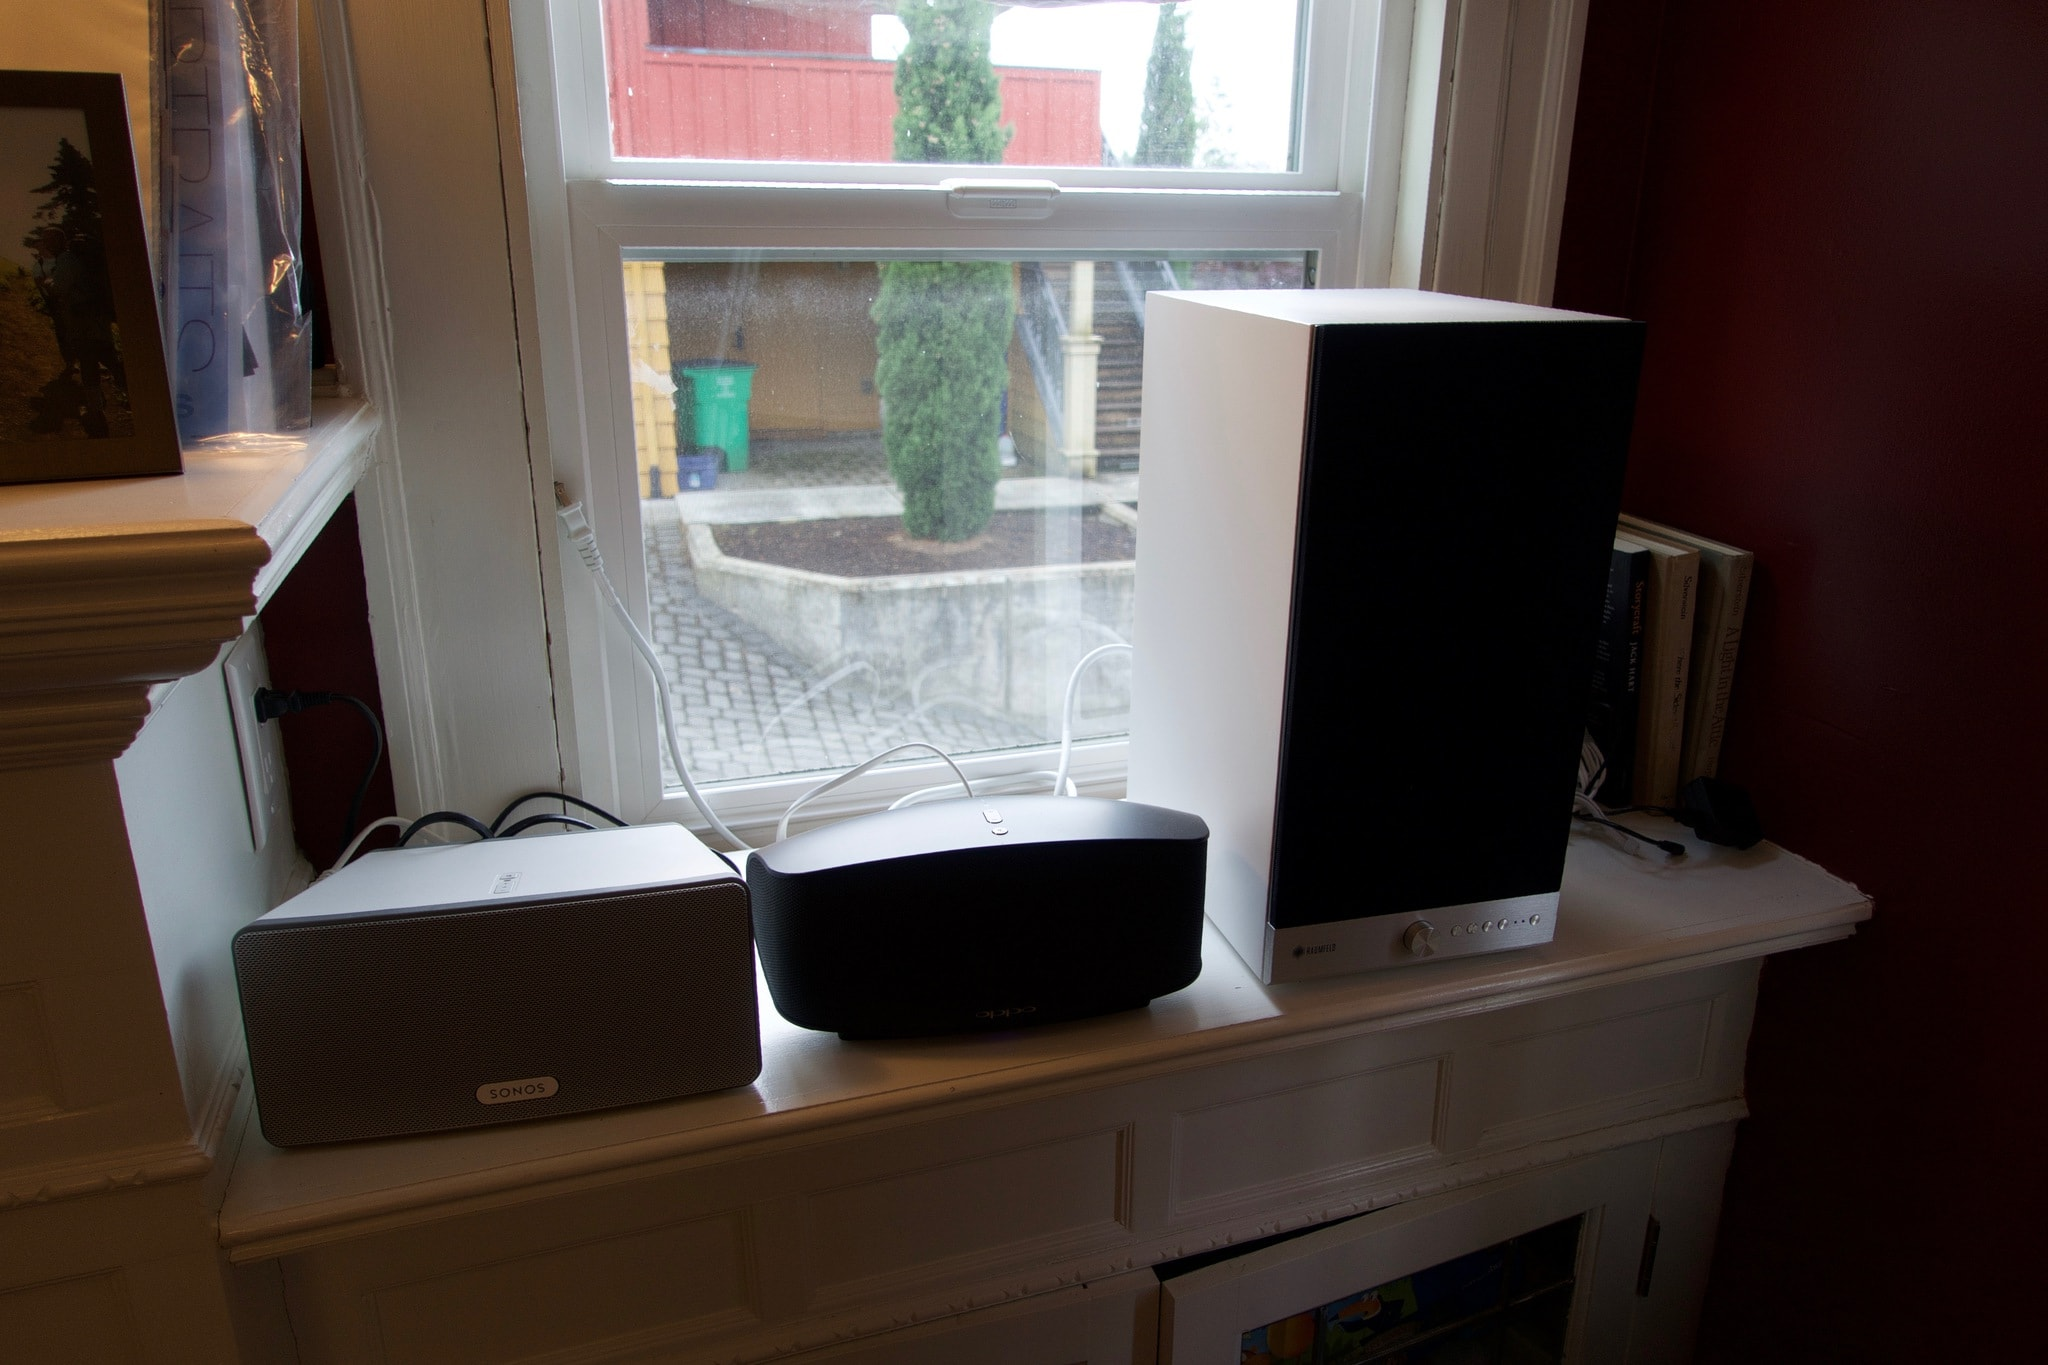 Testing with Sonos PLAY:3 and Oppo Sonica